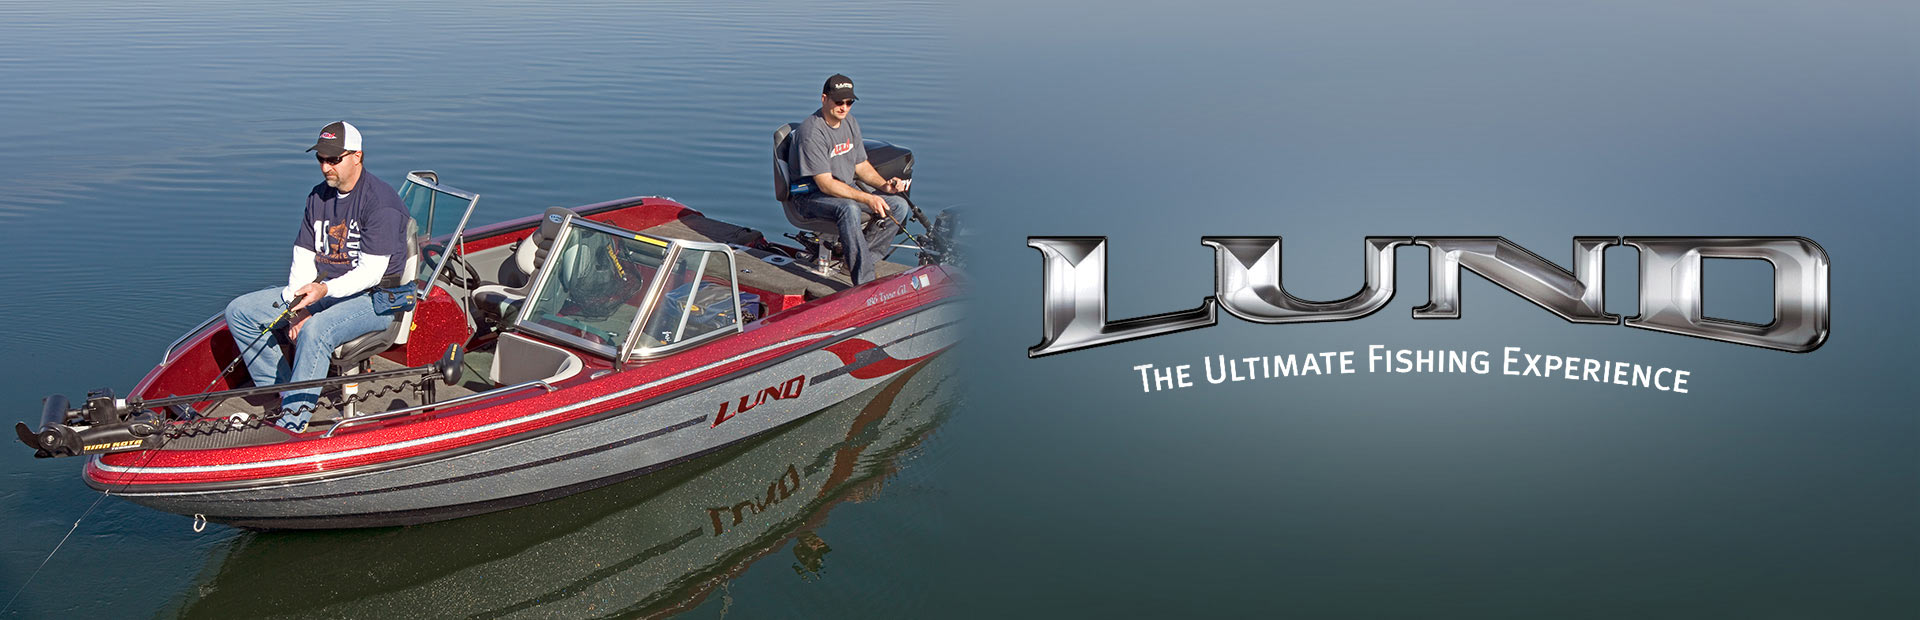 Lund Boat Dealers >> Home Maple City Marine Chatham On 519 354 3640